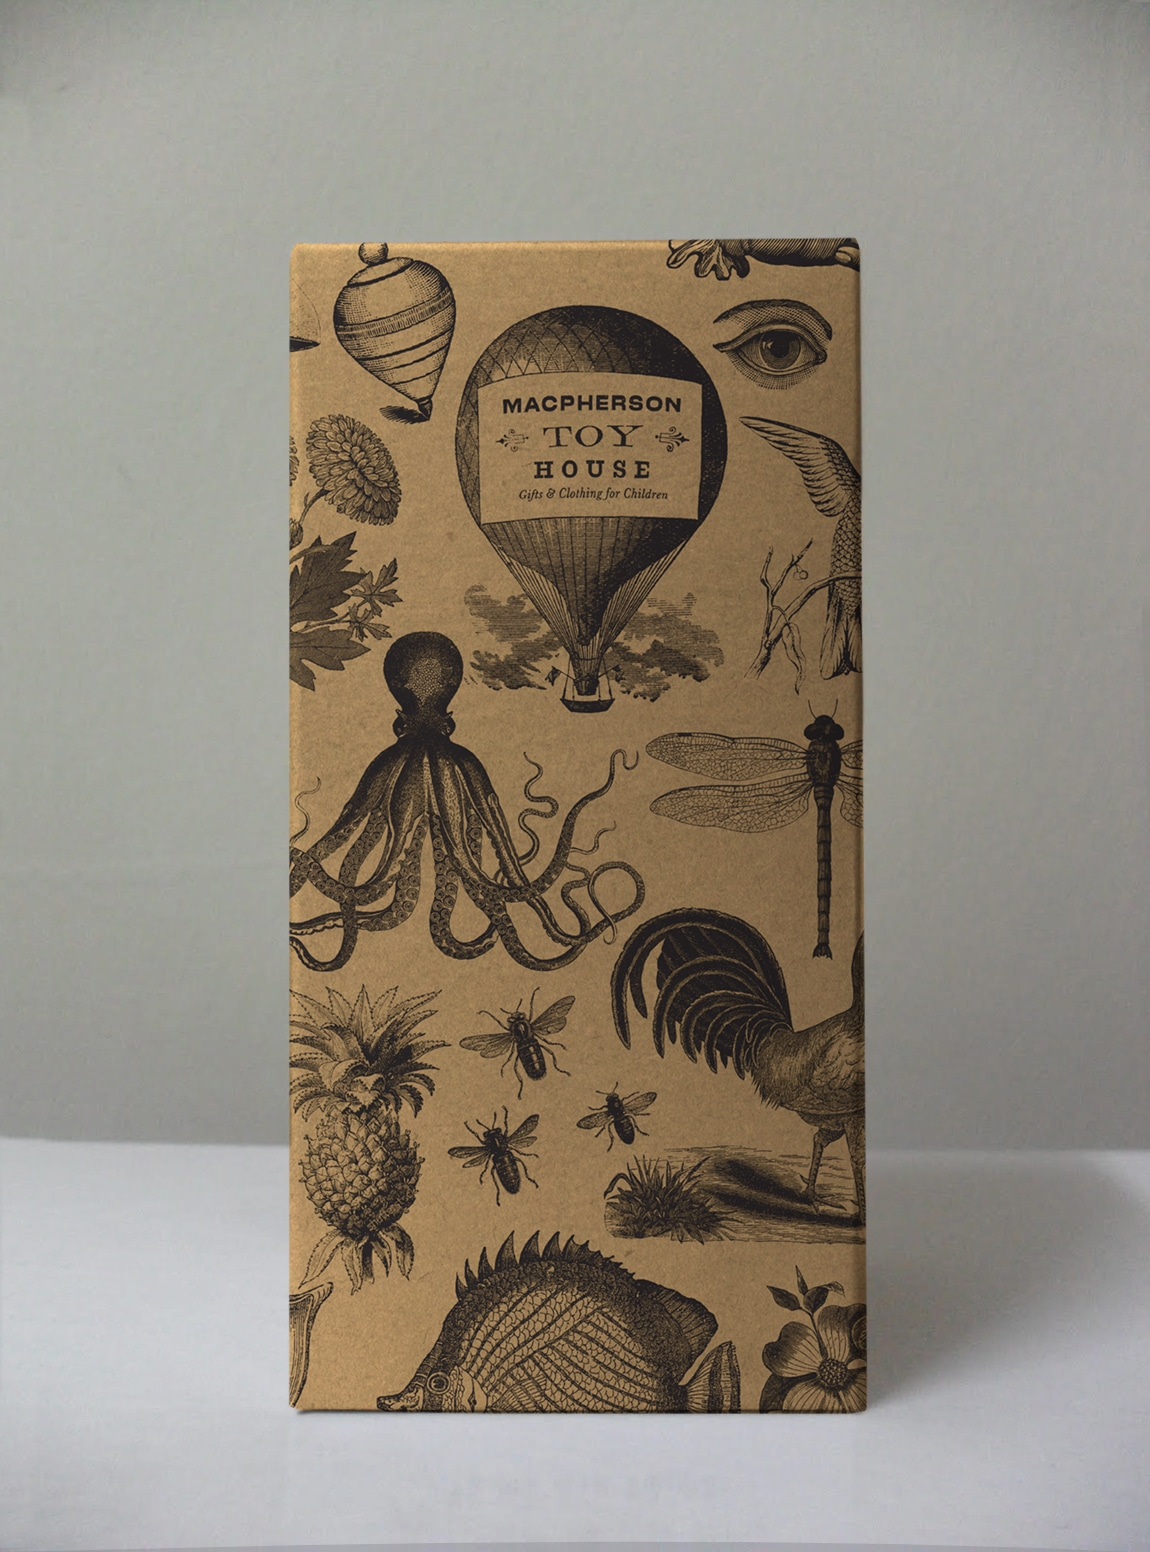 MacPherson Toy House - packaging, illustration